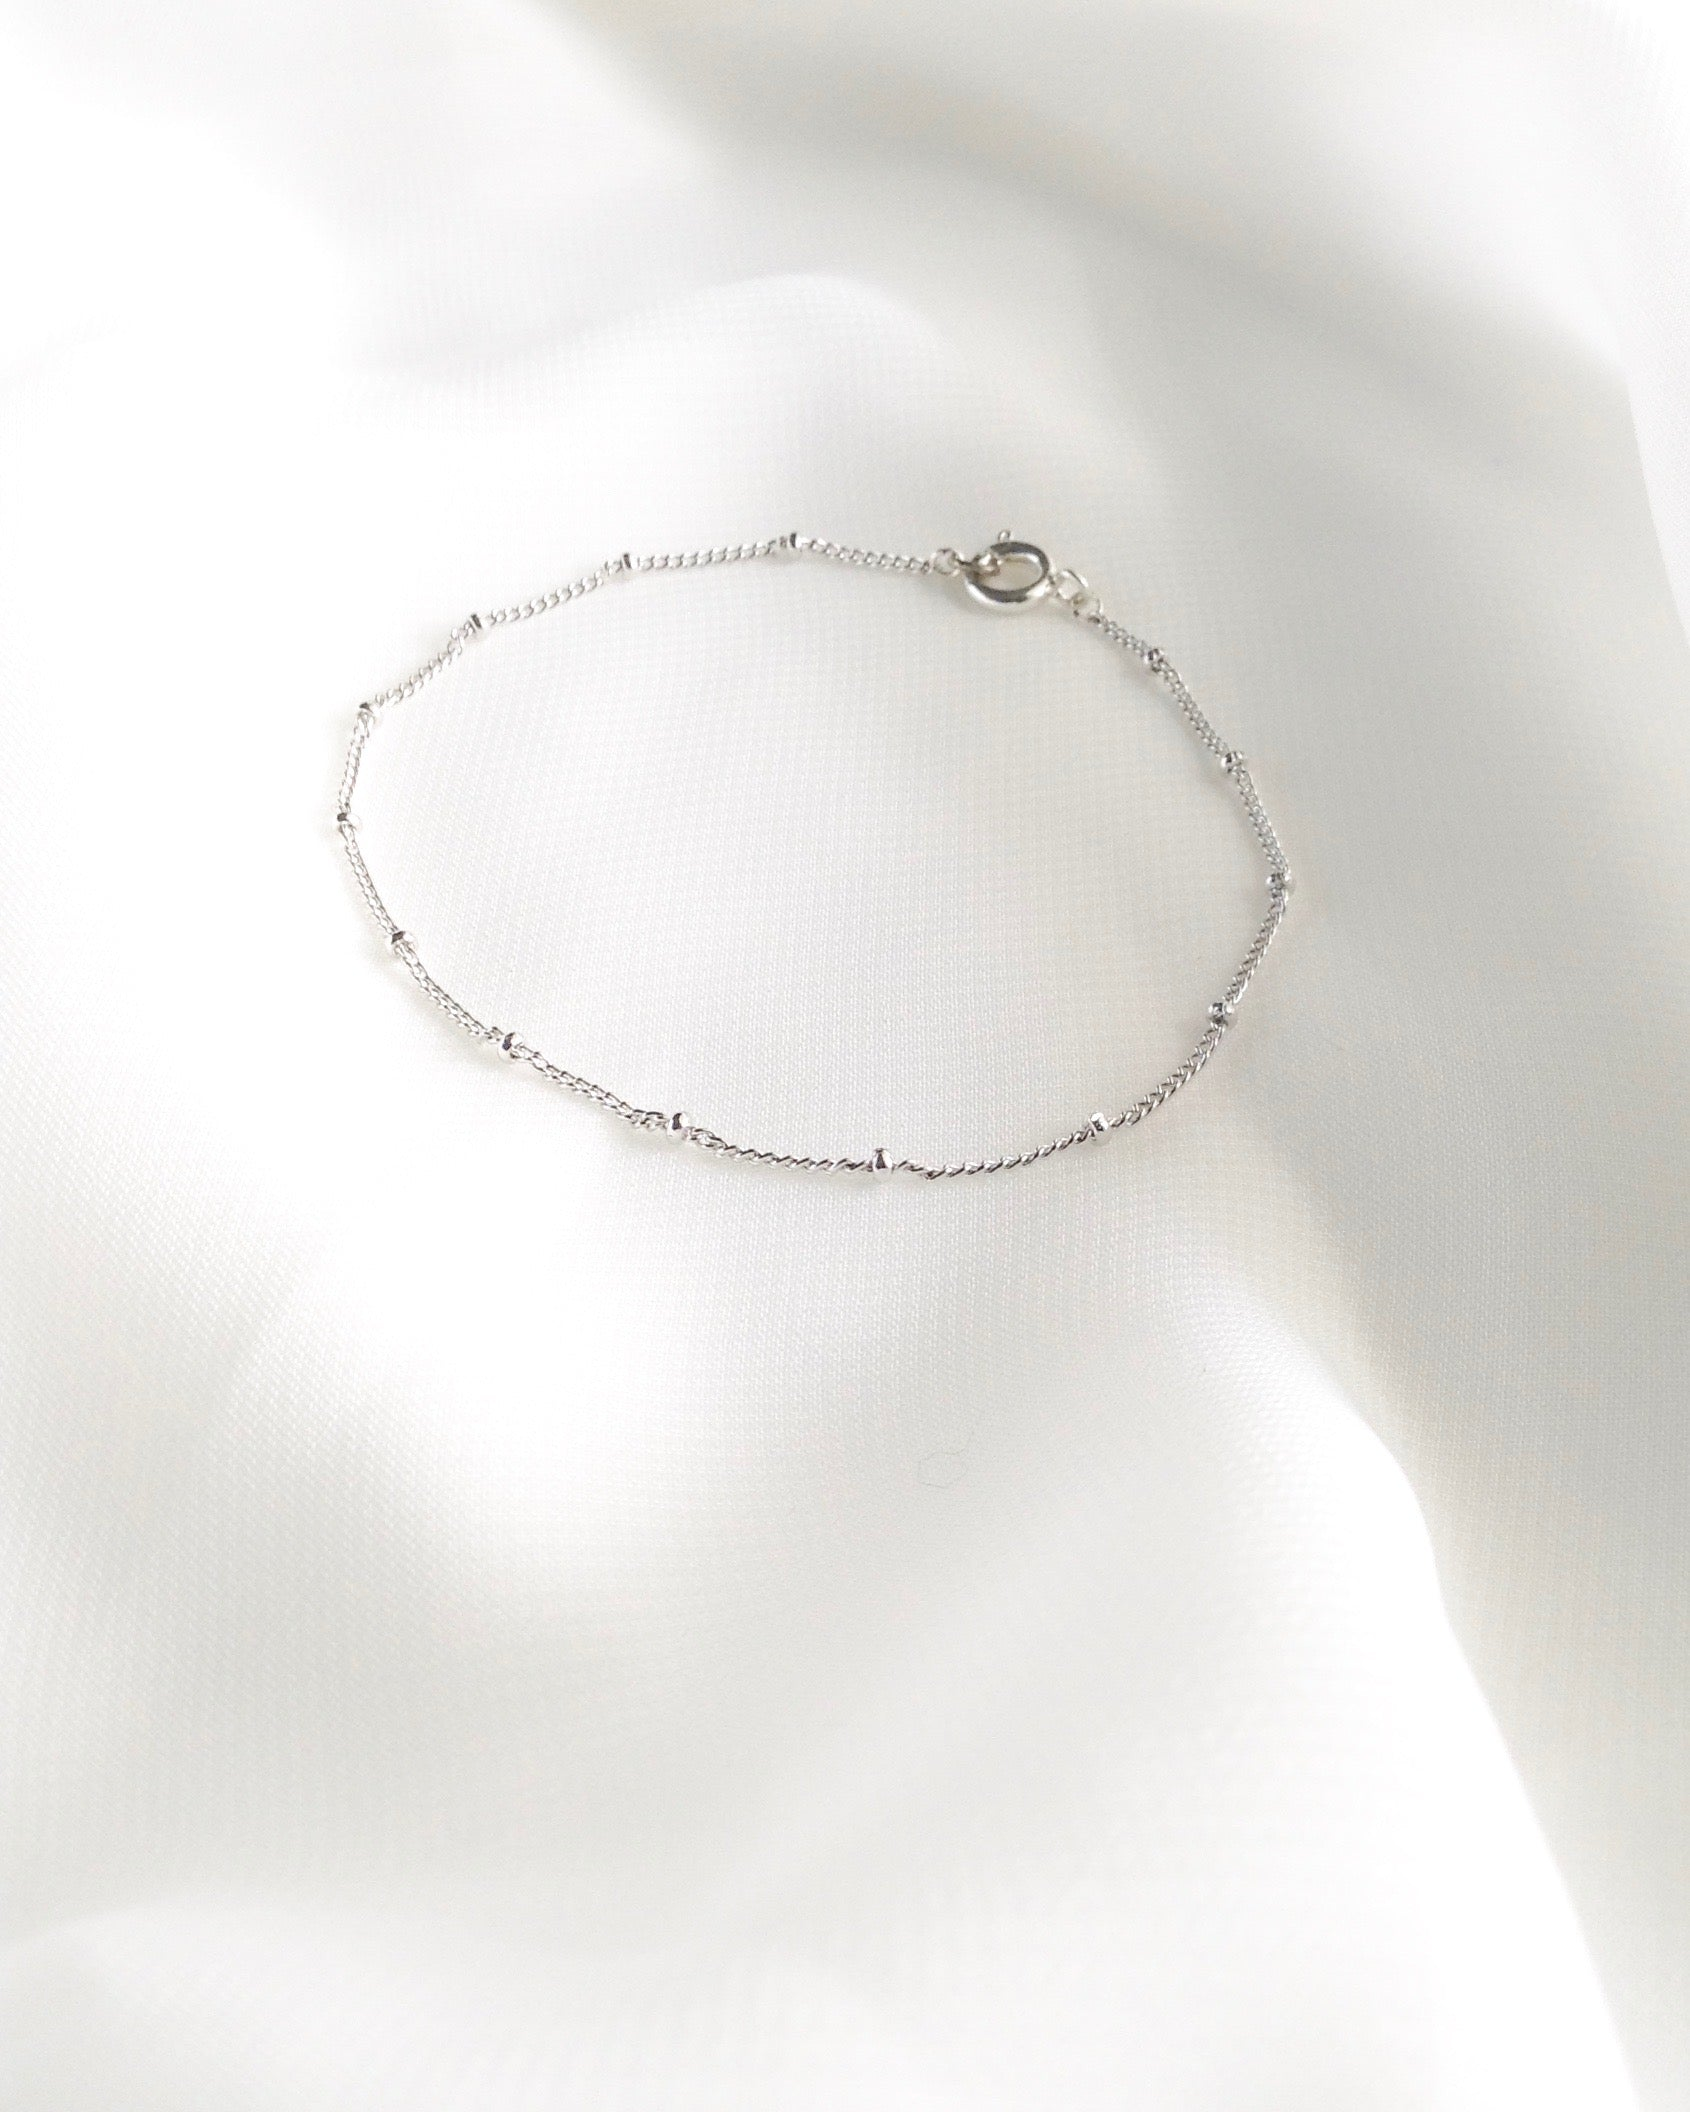 Simple Delicate Bracelet In Gold Filled or Sterling Silver | IB Jewelry